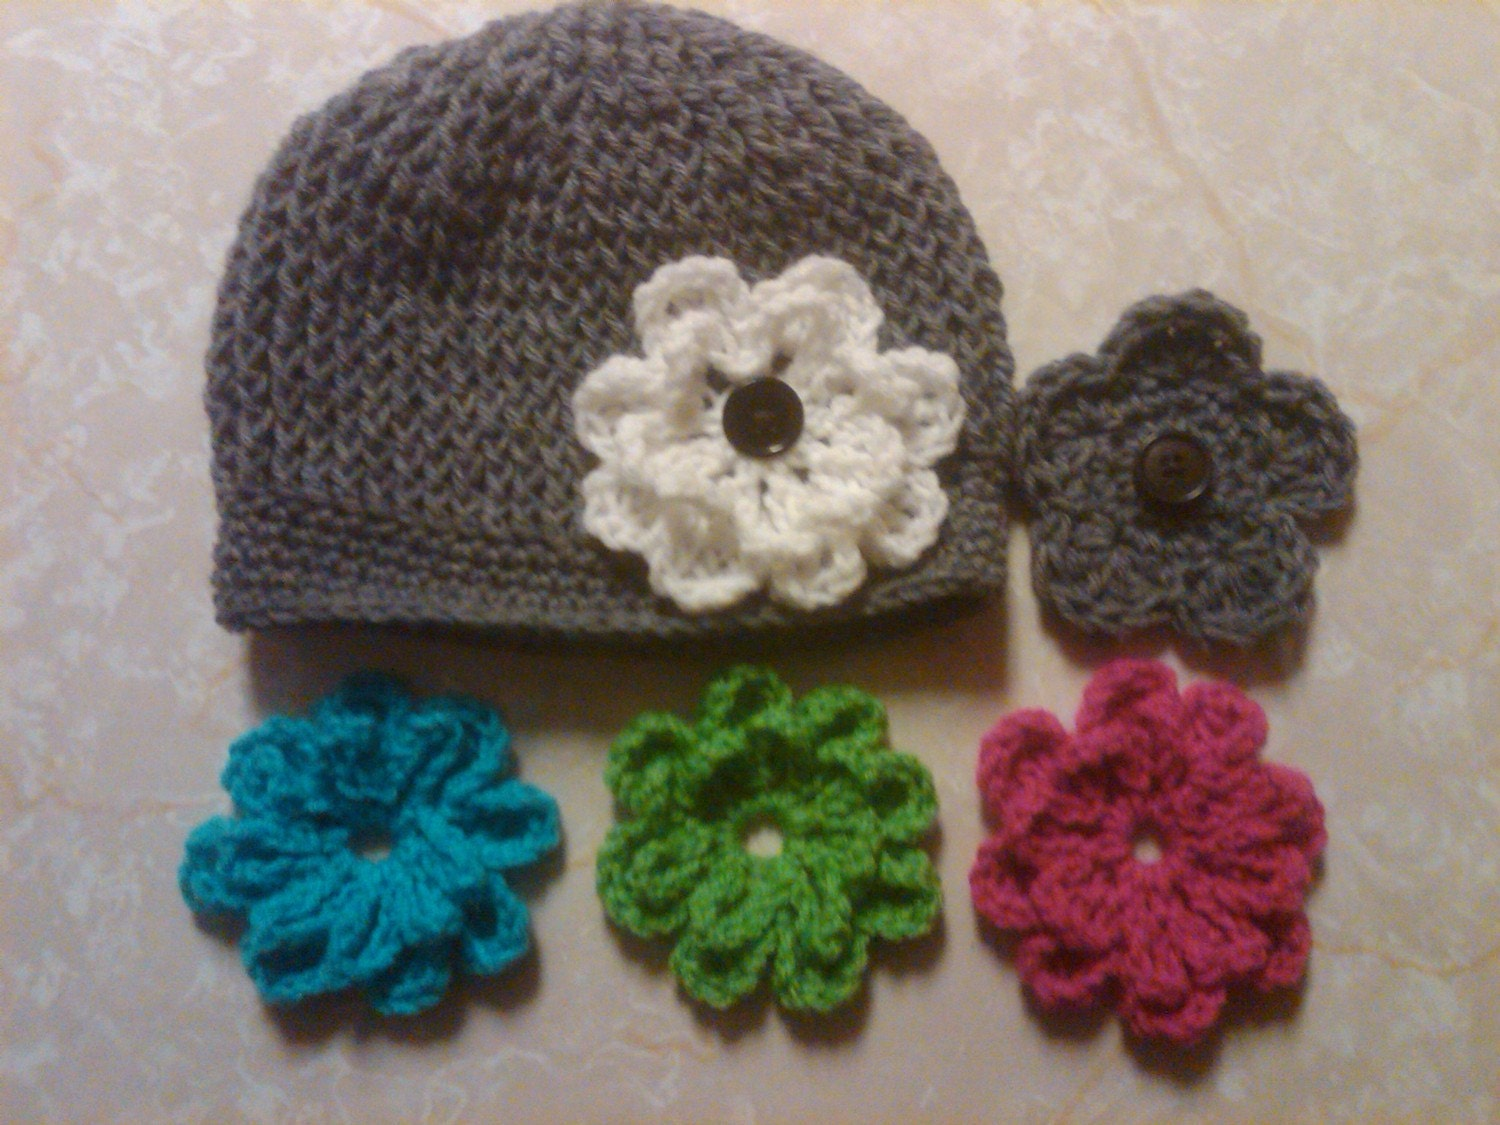 crocheted hat and hair clip with interchangeable flowers for newborns toddlers teens adult...free shipping